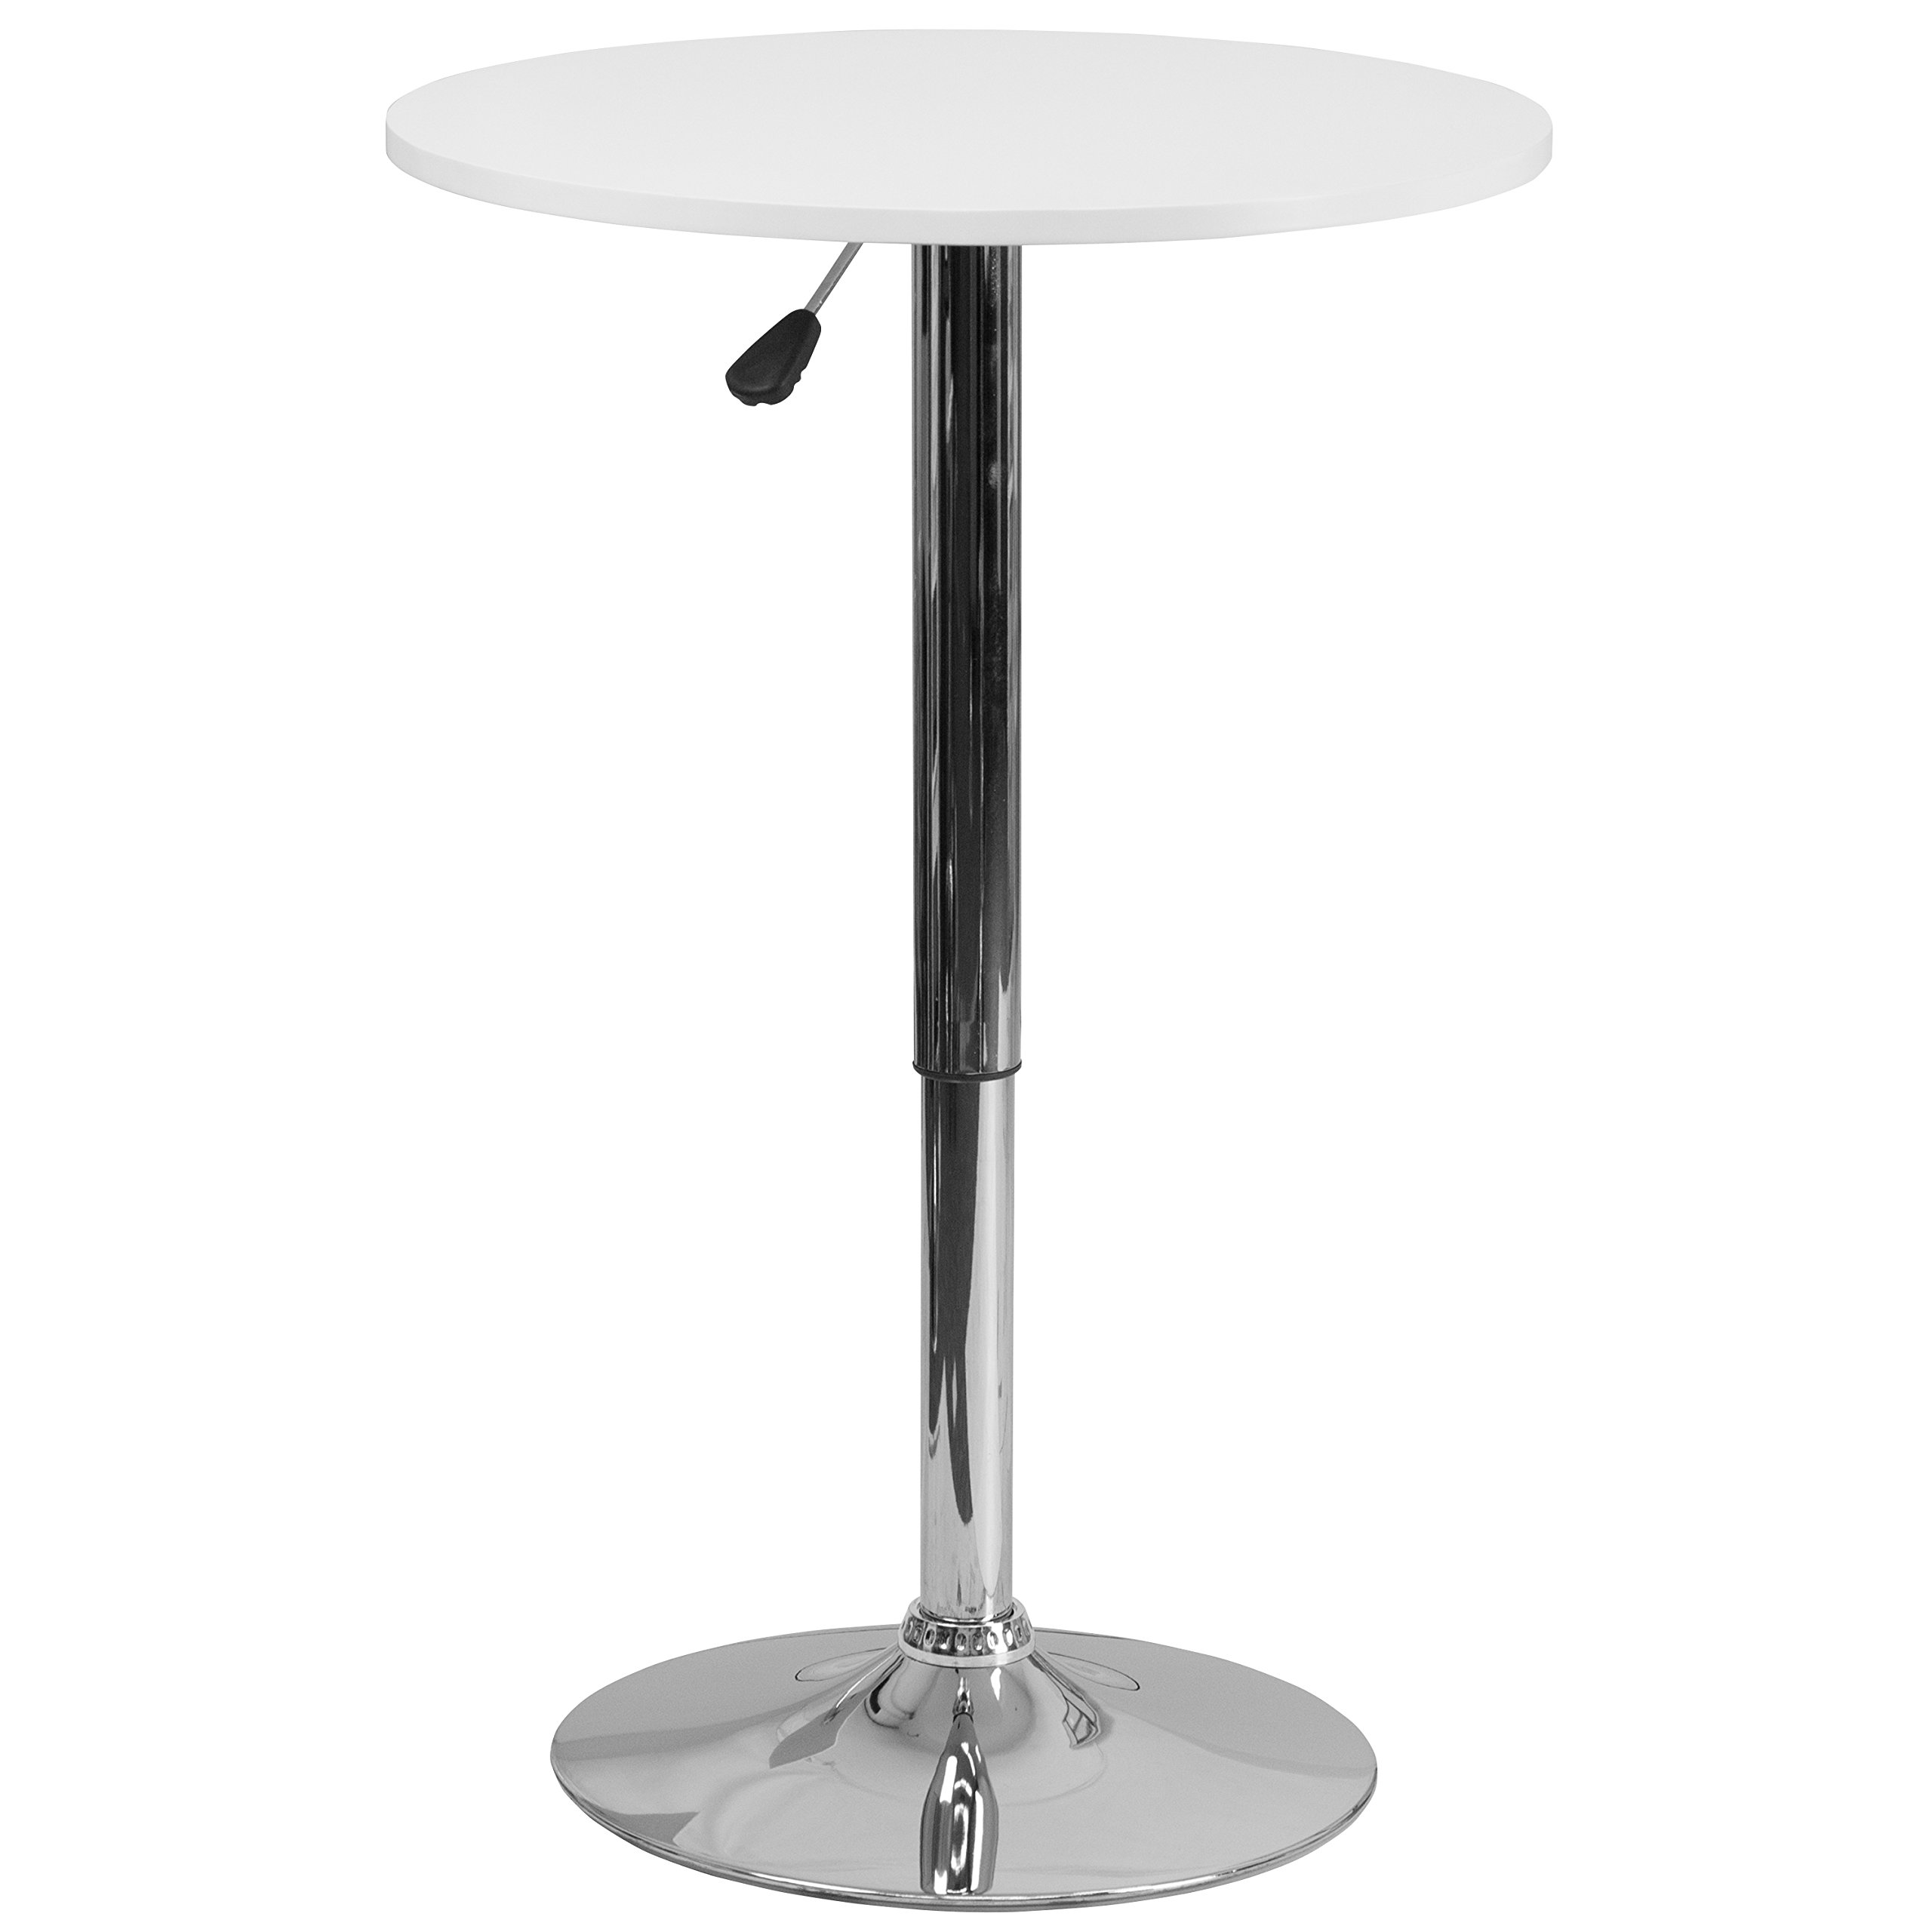 Flash Furniture 23.75'' Round Adjustable Height White Wood Table (Adjustable Range 26.25'' - 35.75'') by Flash Furniture